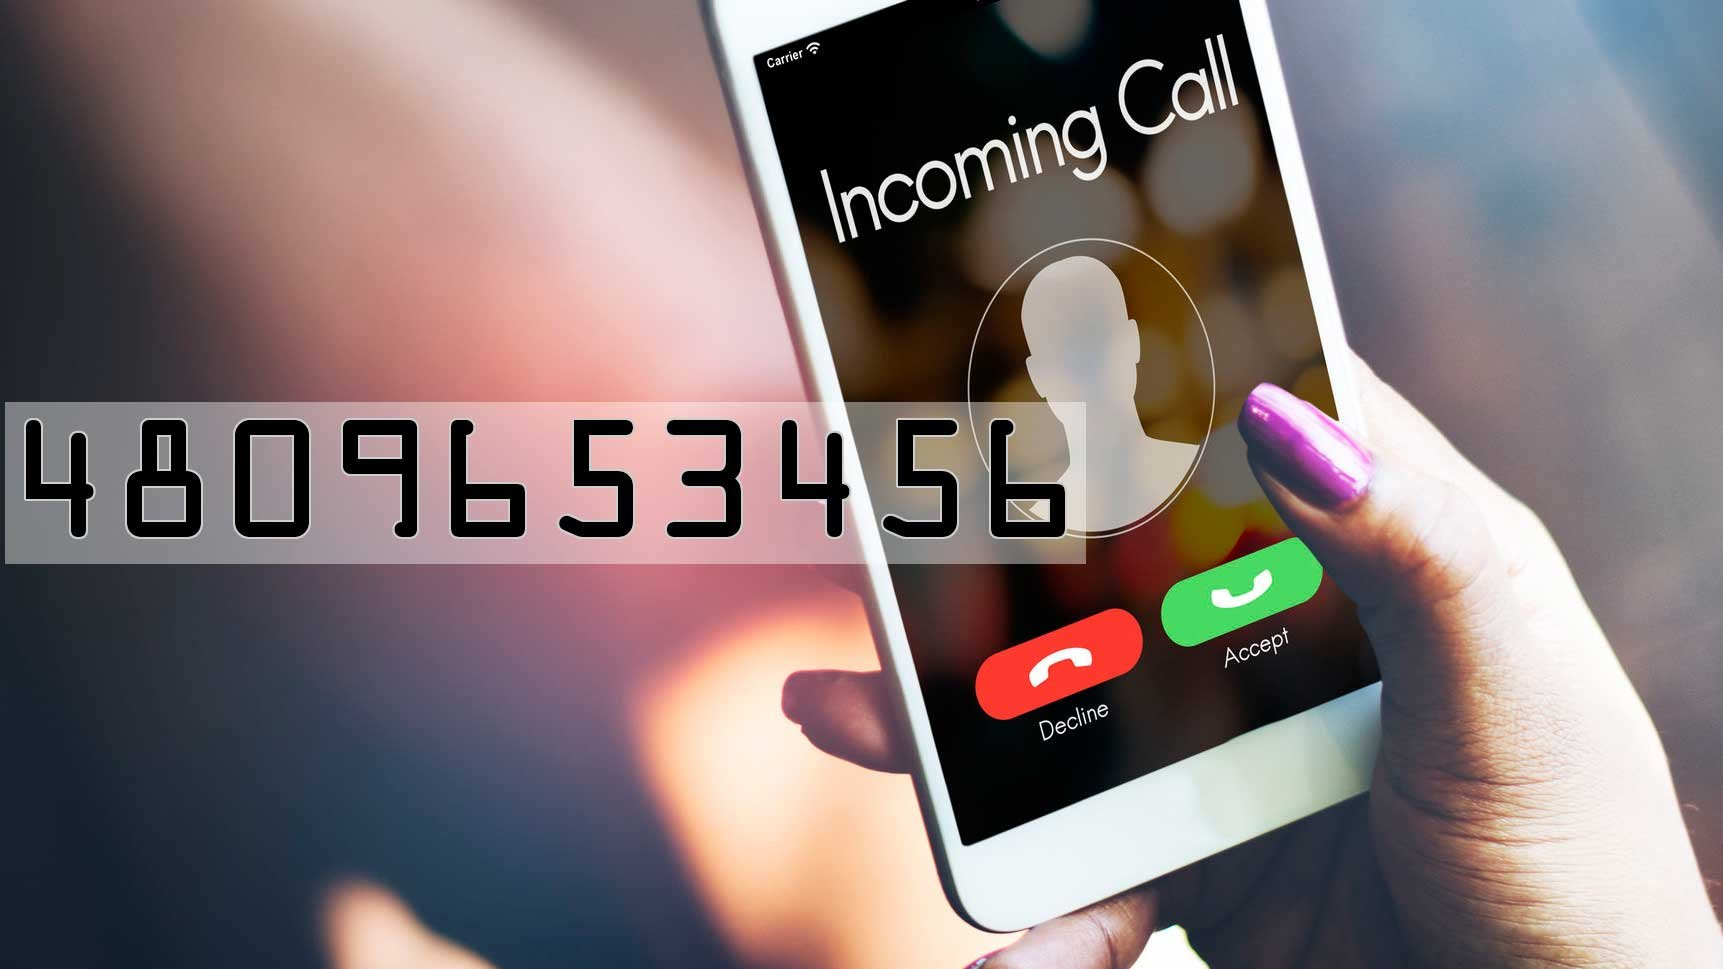 'The caller ID showed 4809653456 without spaces or hyphens,' according to the ASU Police Department. (Source: 3TV/CBS 5 and rawpixel via 123RF)